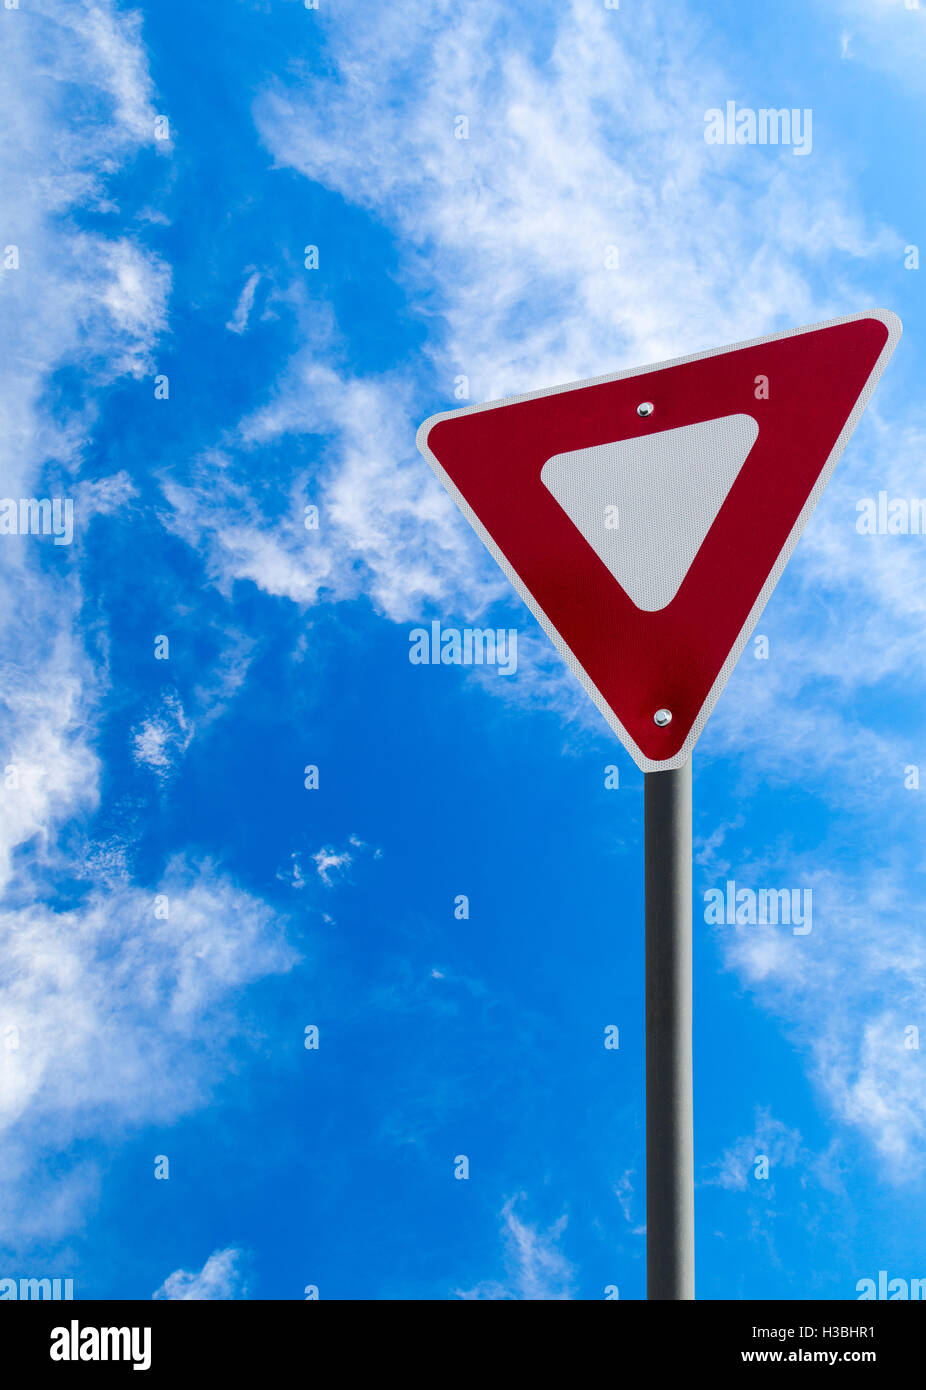 Traffic yield sign against a blue cloudy sky with copy space. Vertical orientation. - Stock Image